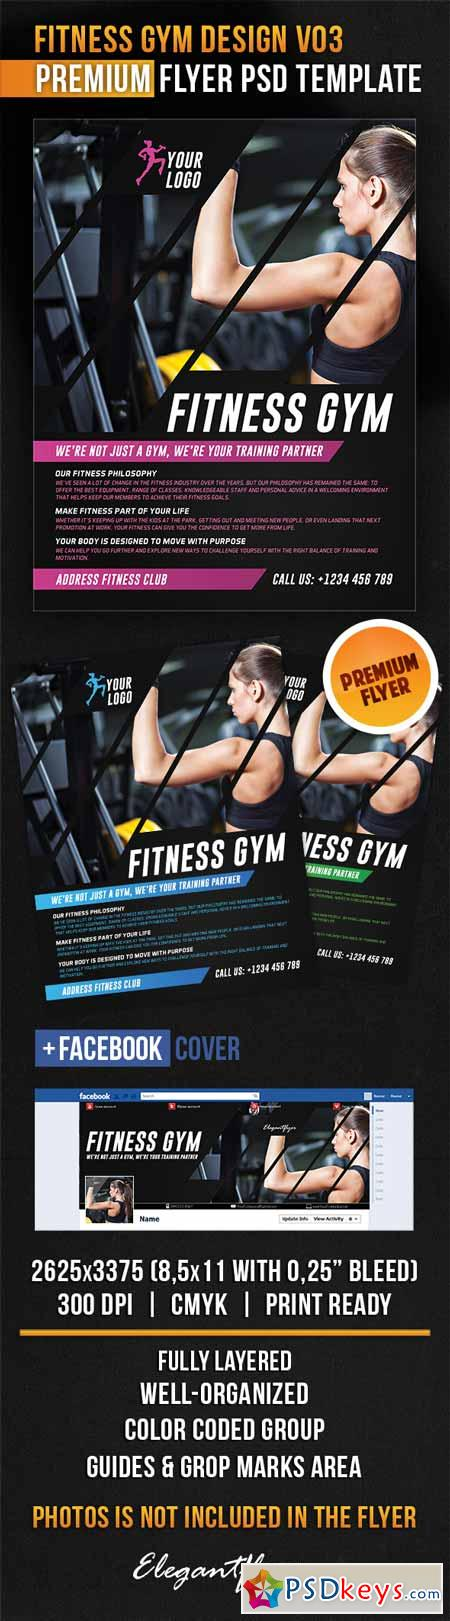 Fitness Gym Design V03 – Flyer PSD Template + Facebook Cover